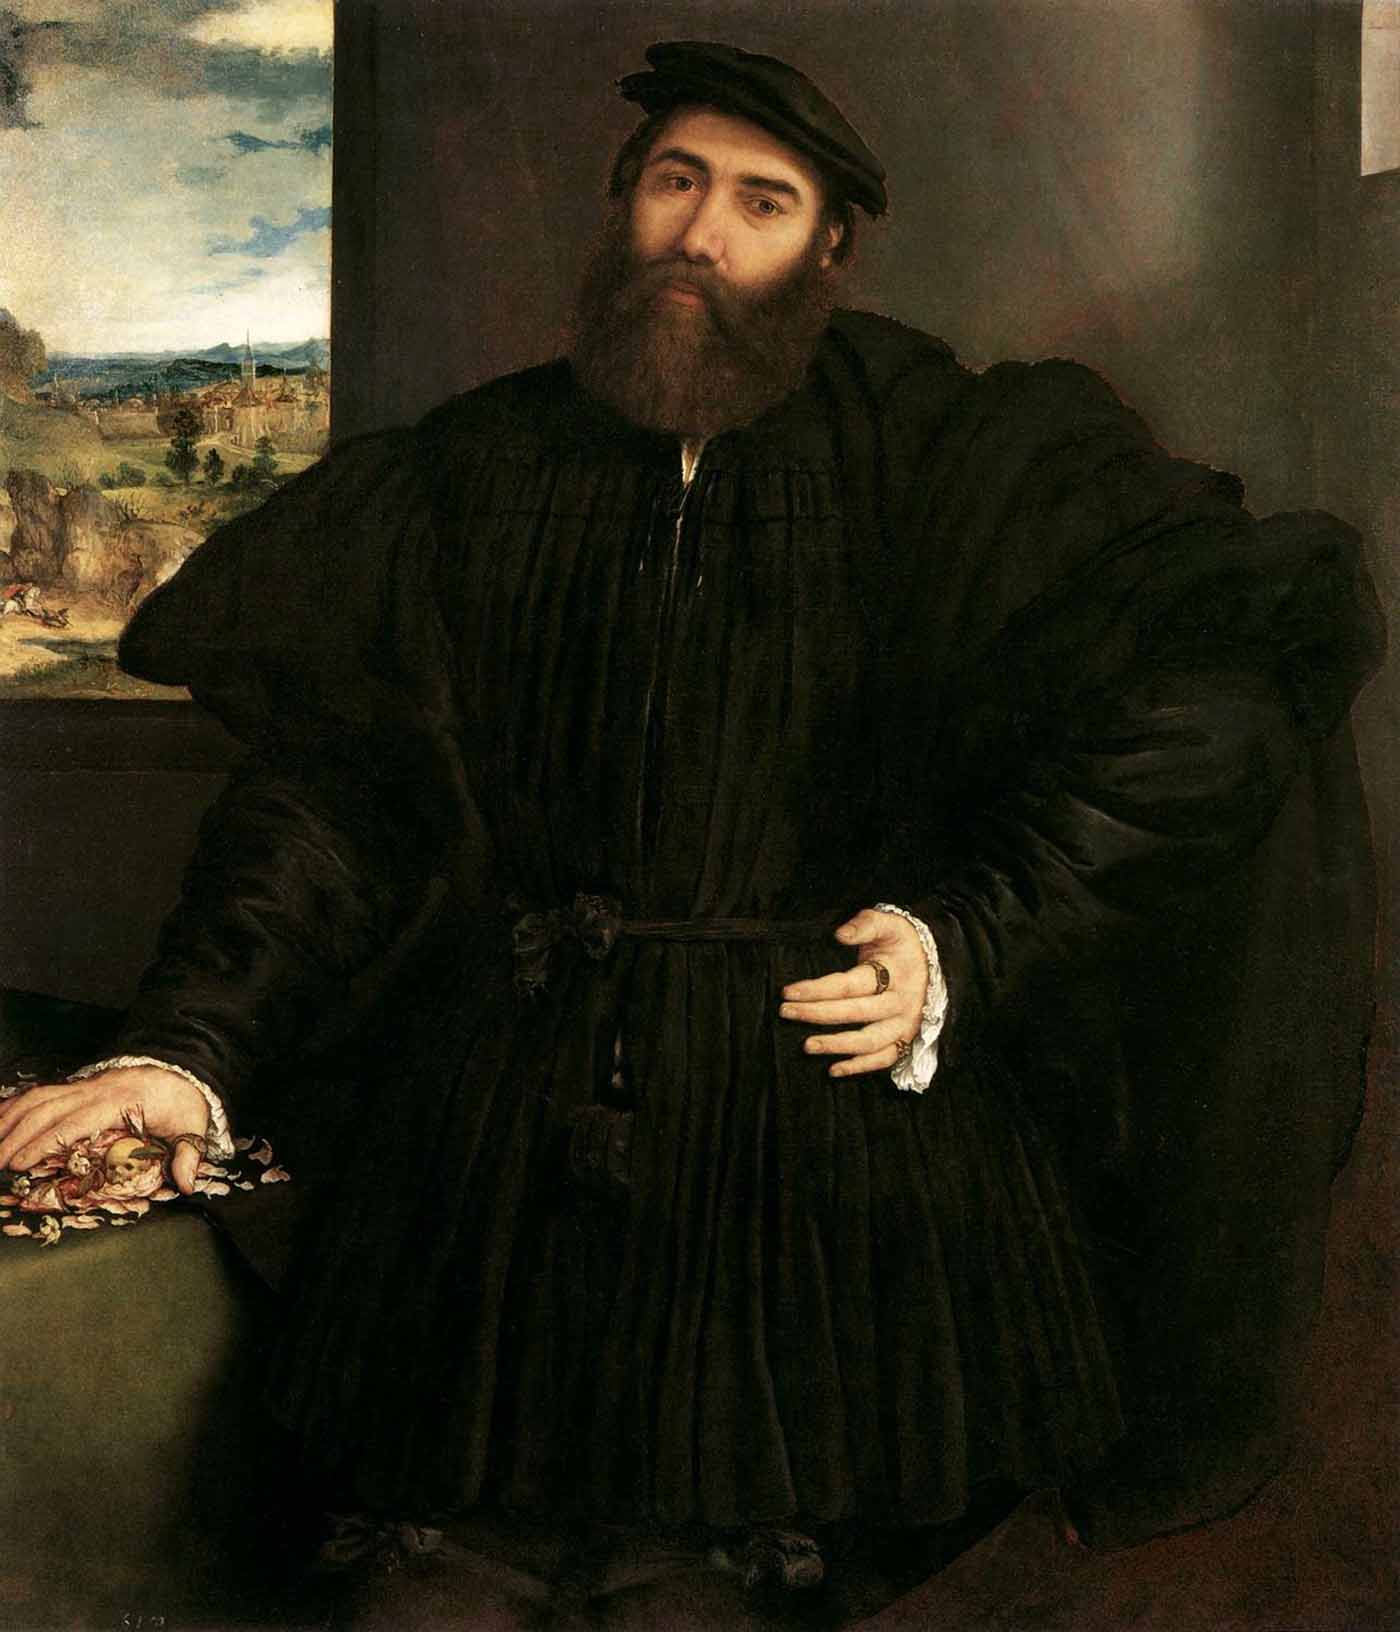 Lorenzo Lotto, Portrait of a Man, c. 1535. Rome, Galleria Borghese.